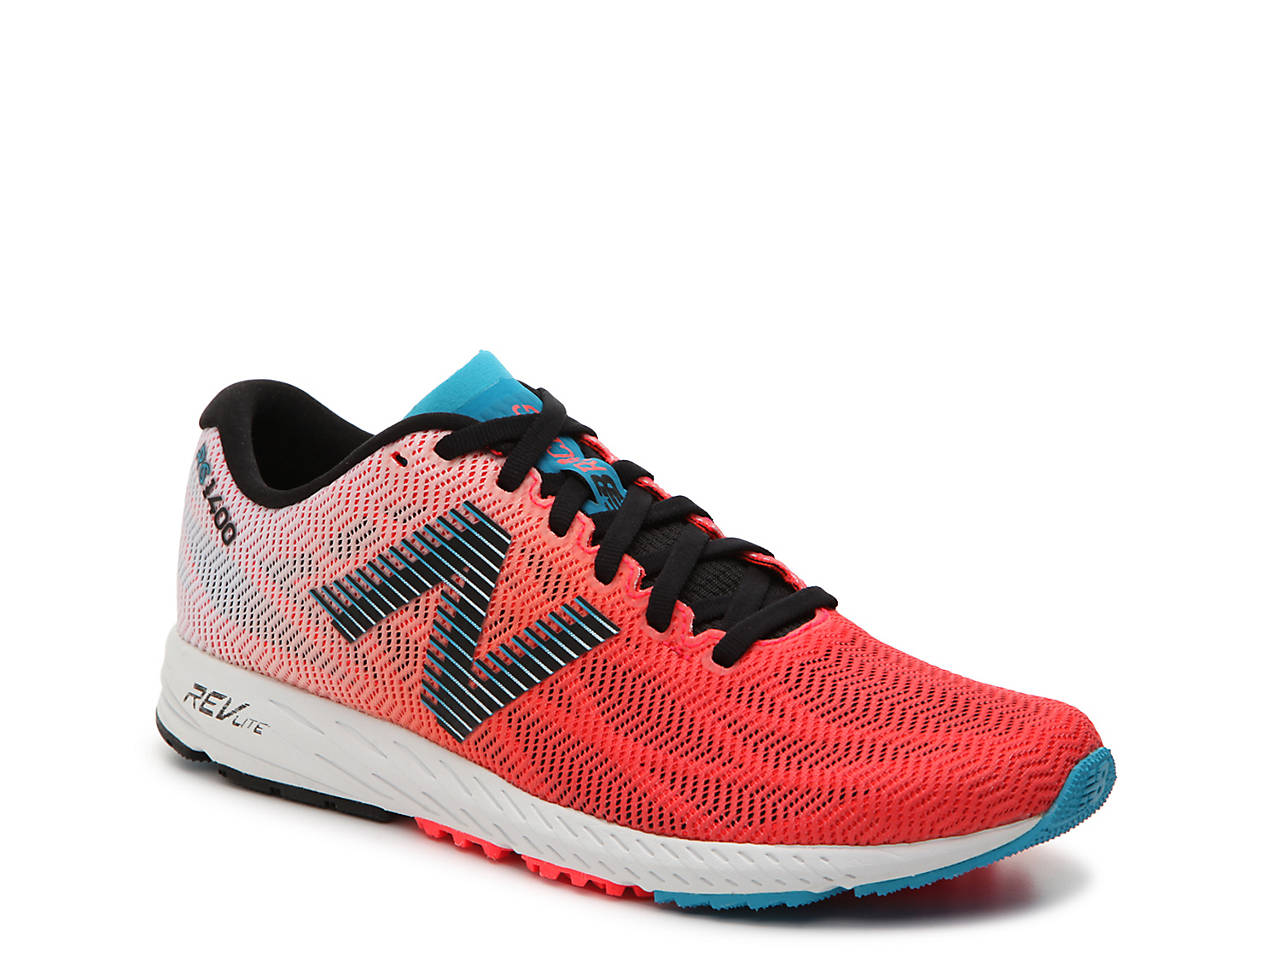 new balance women's 1400 running shoe